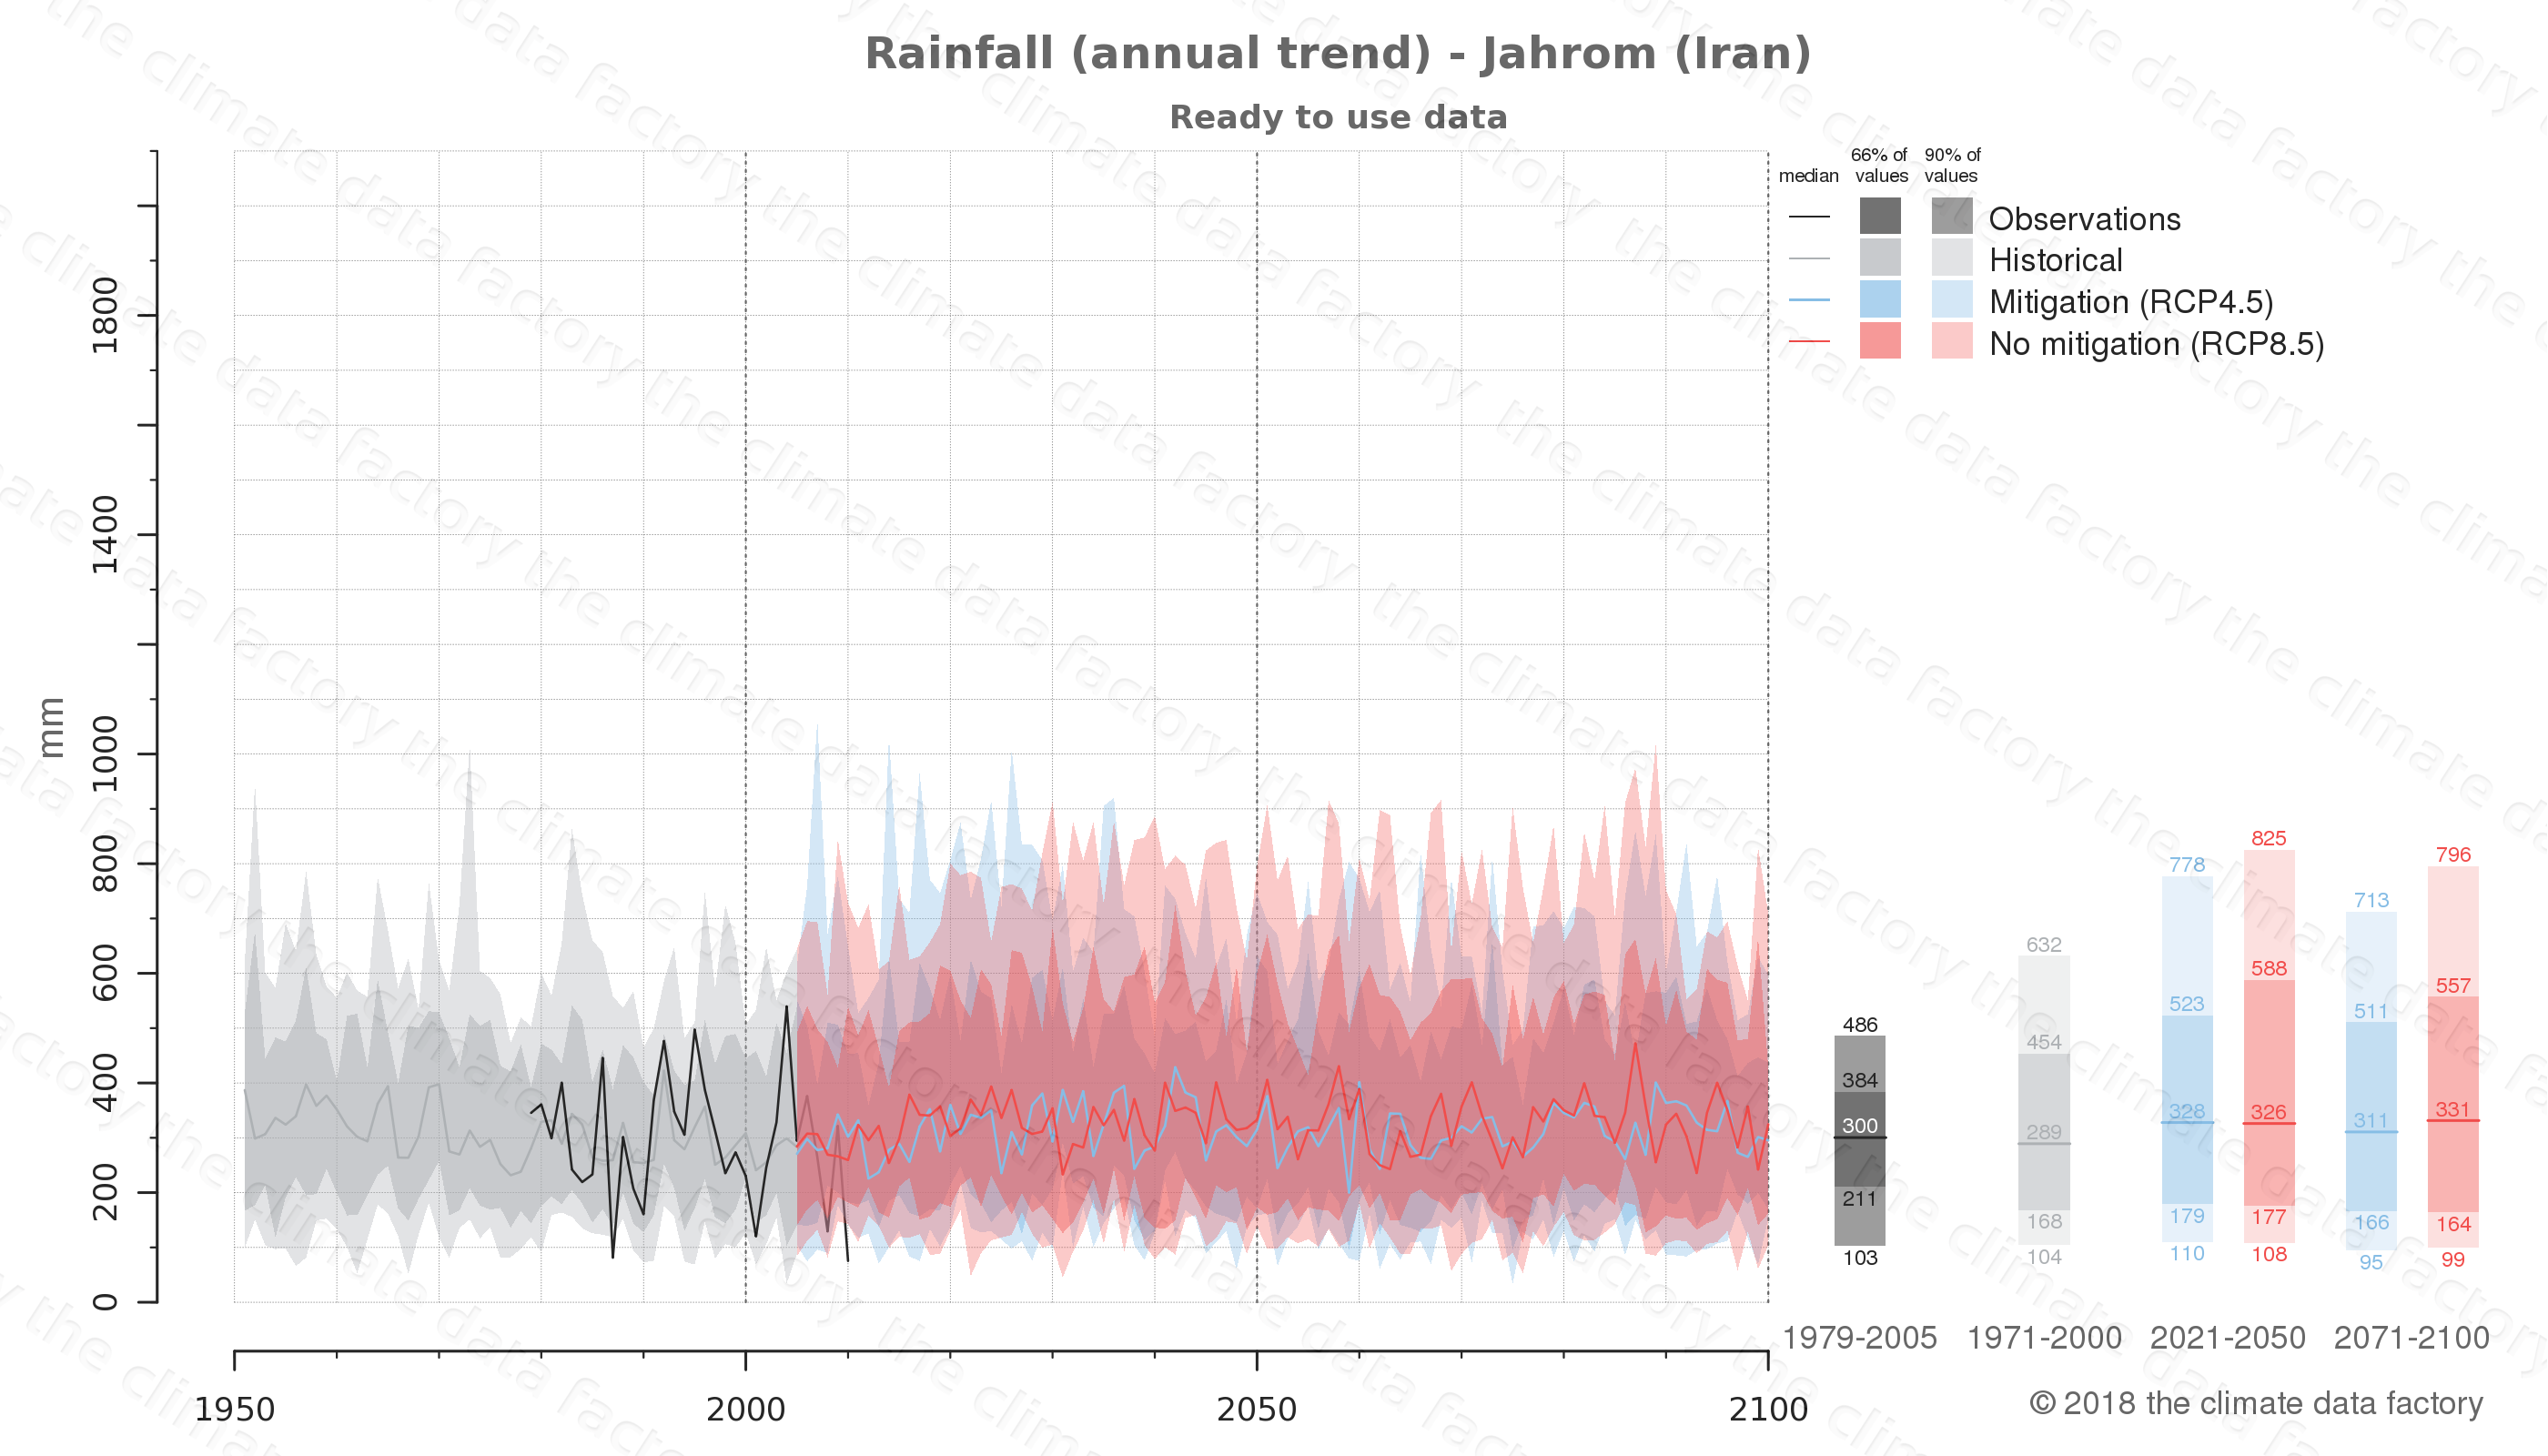 climate change data policy adaptation climate graph city data rainfall jahrom iran